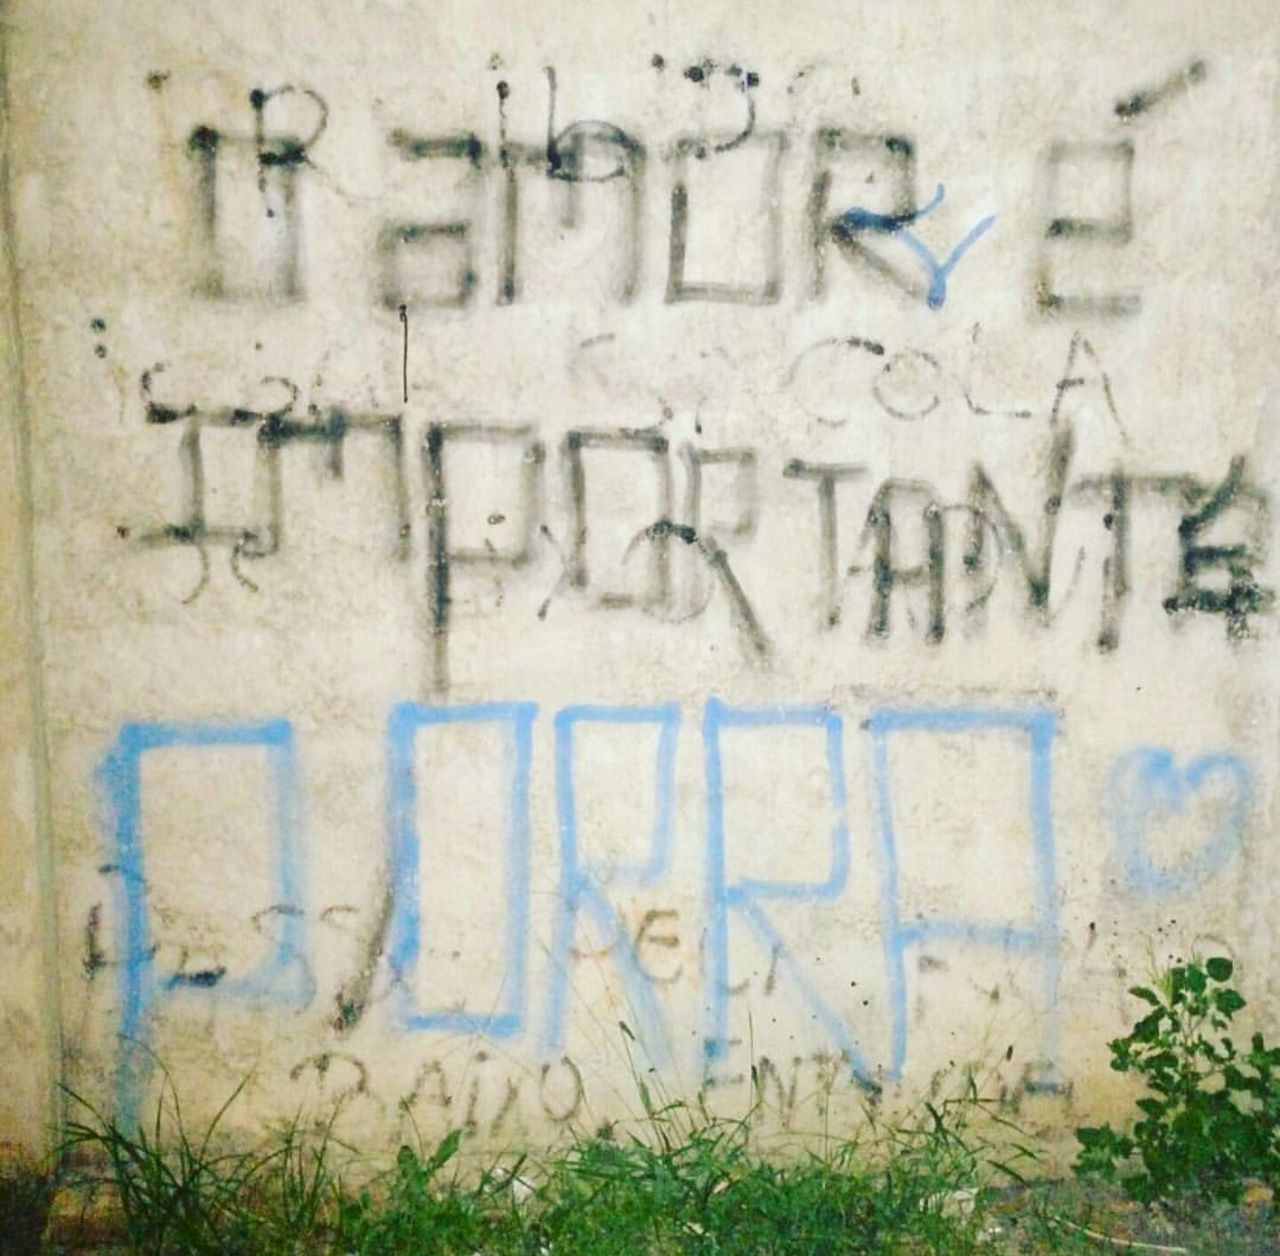 text, graffiti, day, outdoors, architecture, built structure, no people, building exterior, close-up